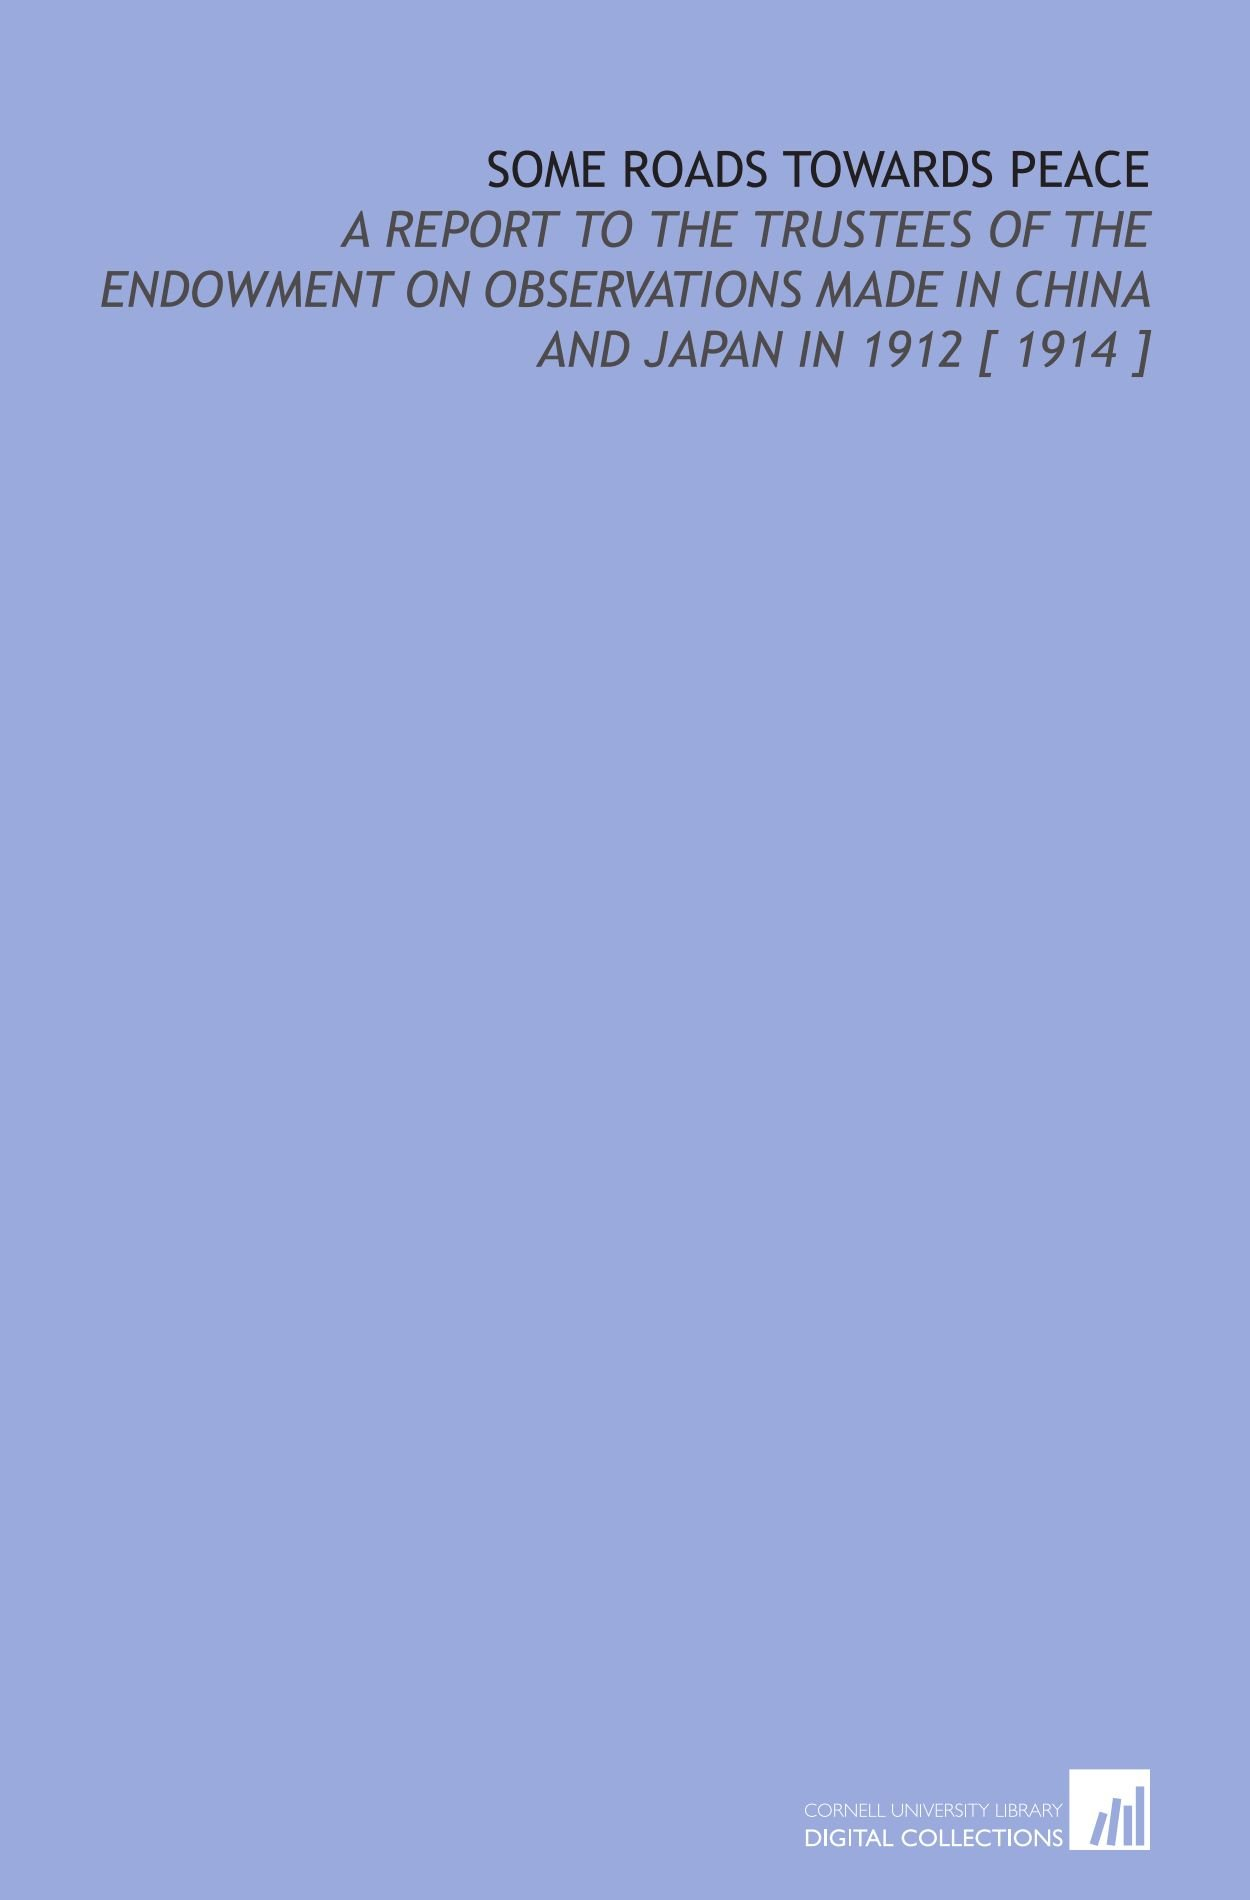 Some Roads Towards Peace: A Report to the Trustees of the Endowment on Observations Made in China and Japan in 1912 [ 1914 ] PDF